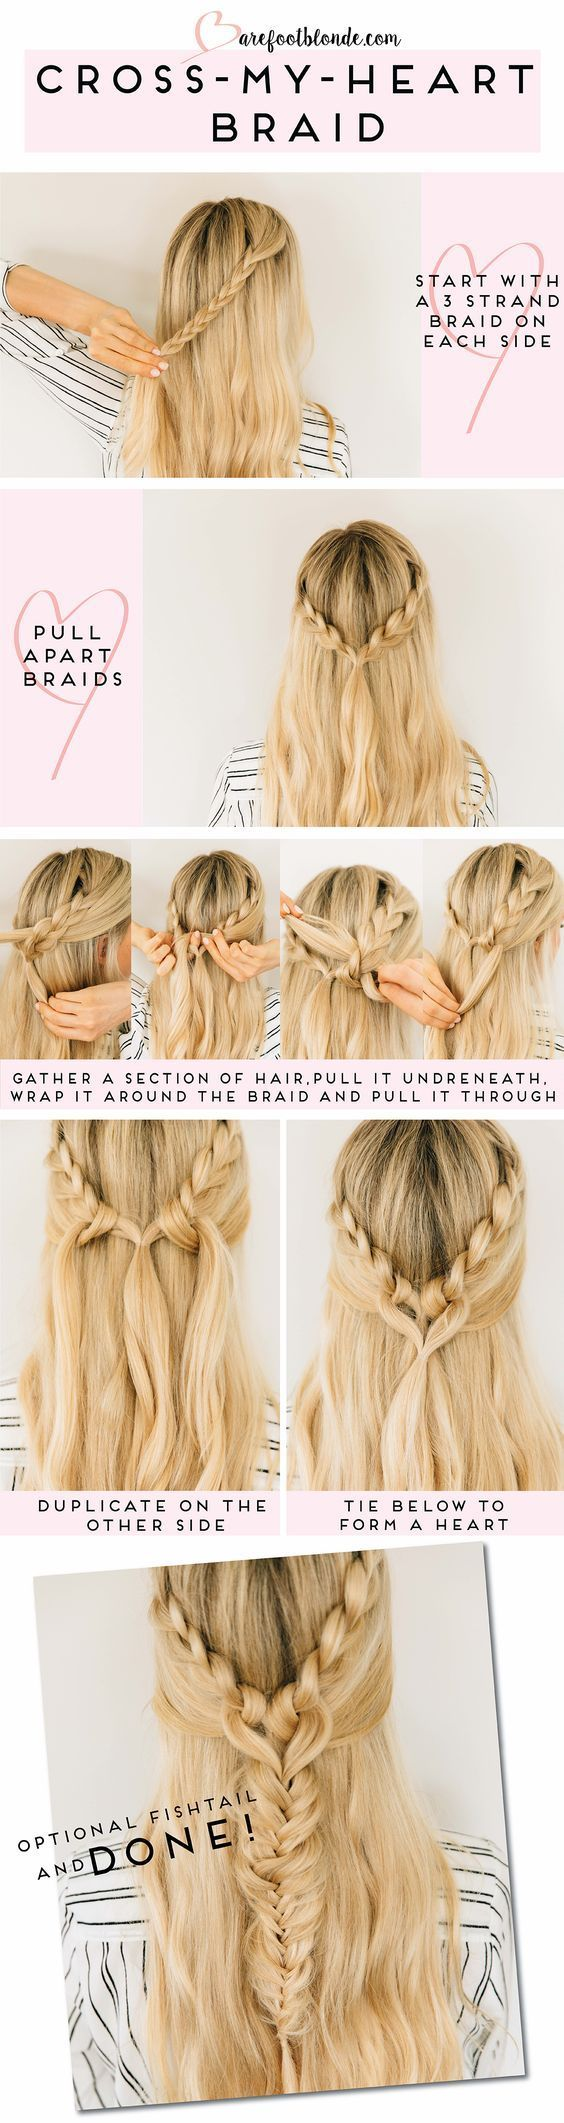 25 Easy Braided Hairstyle Tutorials That Anyone Can Master